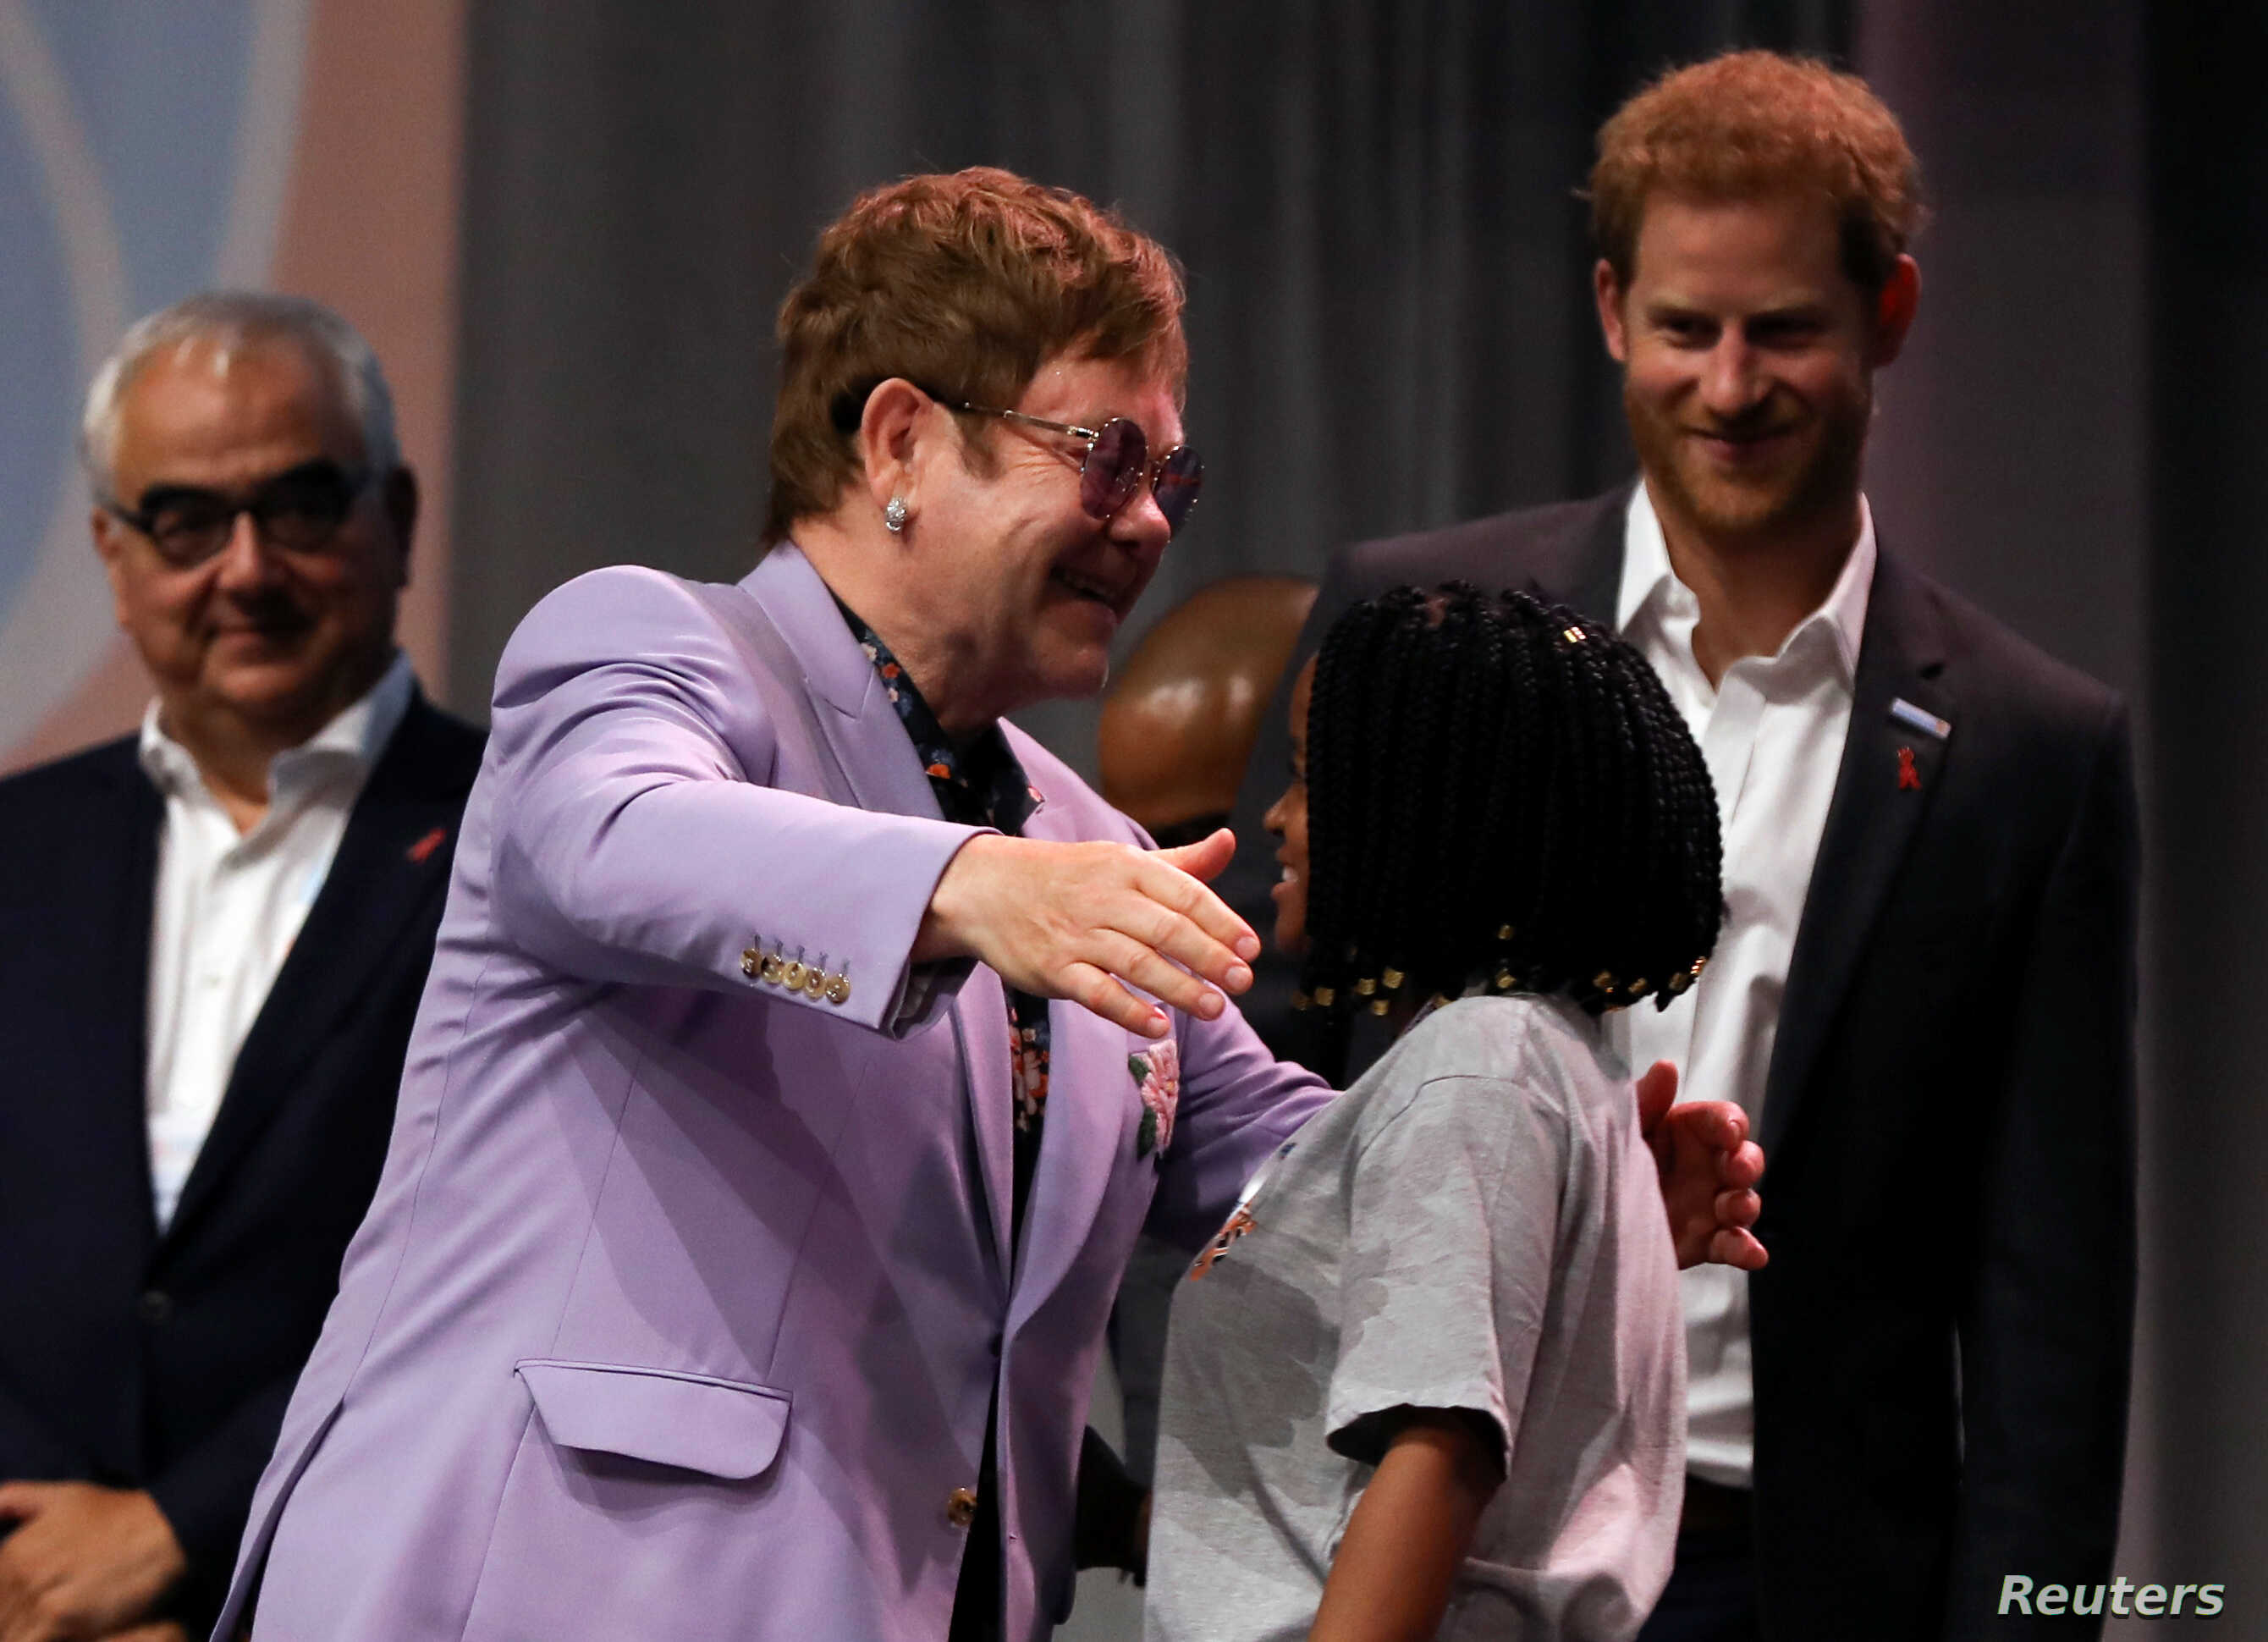 """British musician Elton John embraces a participant as Britain's Prince Harry looks on during a panel """"Breaking barriers of inequity in the HIV response"""" during the 22nd International AIDS Conference (AIDS 2018), the largest HIV/AIDS-focused meeting i..."""